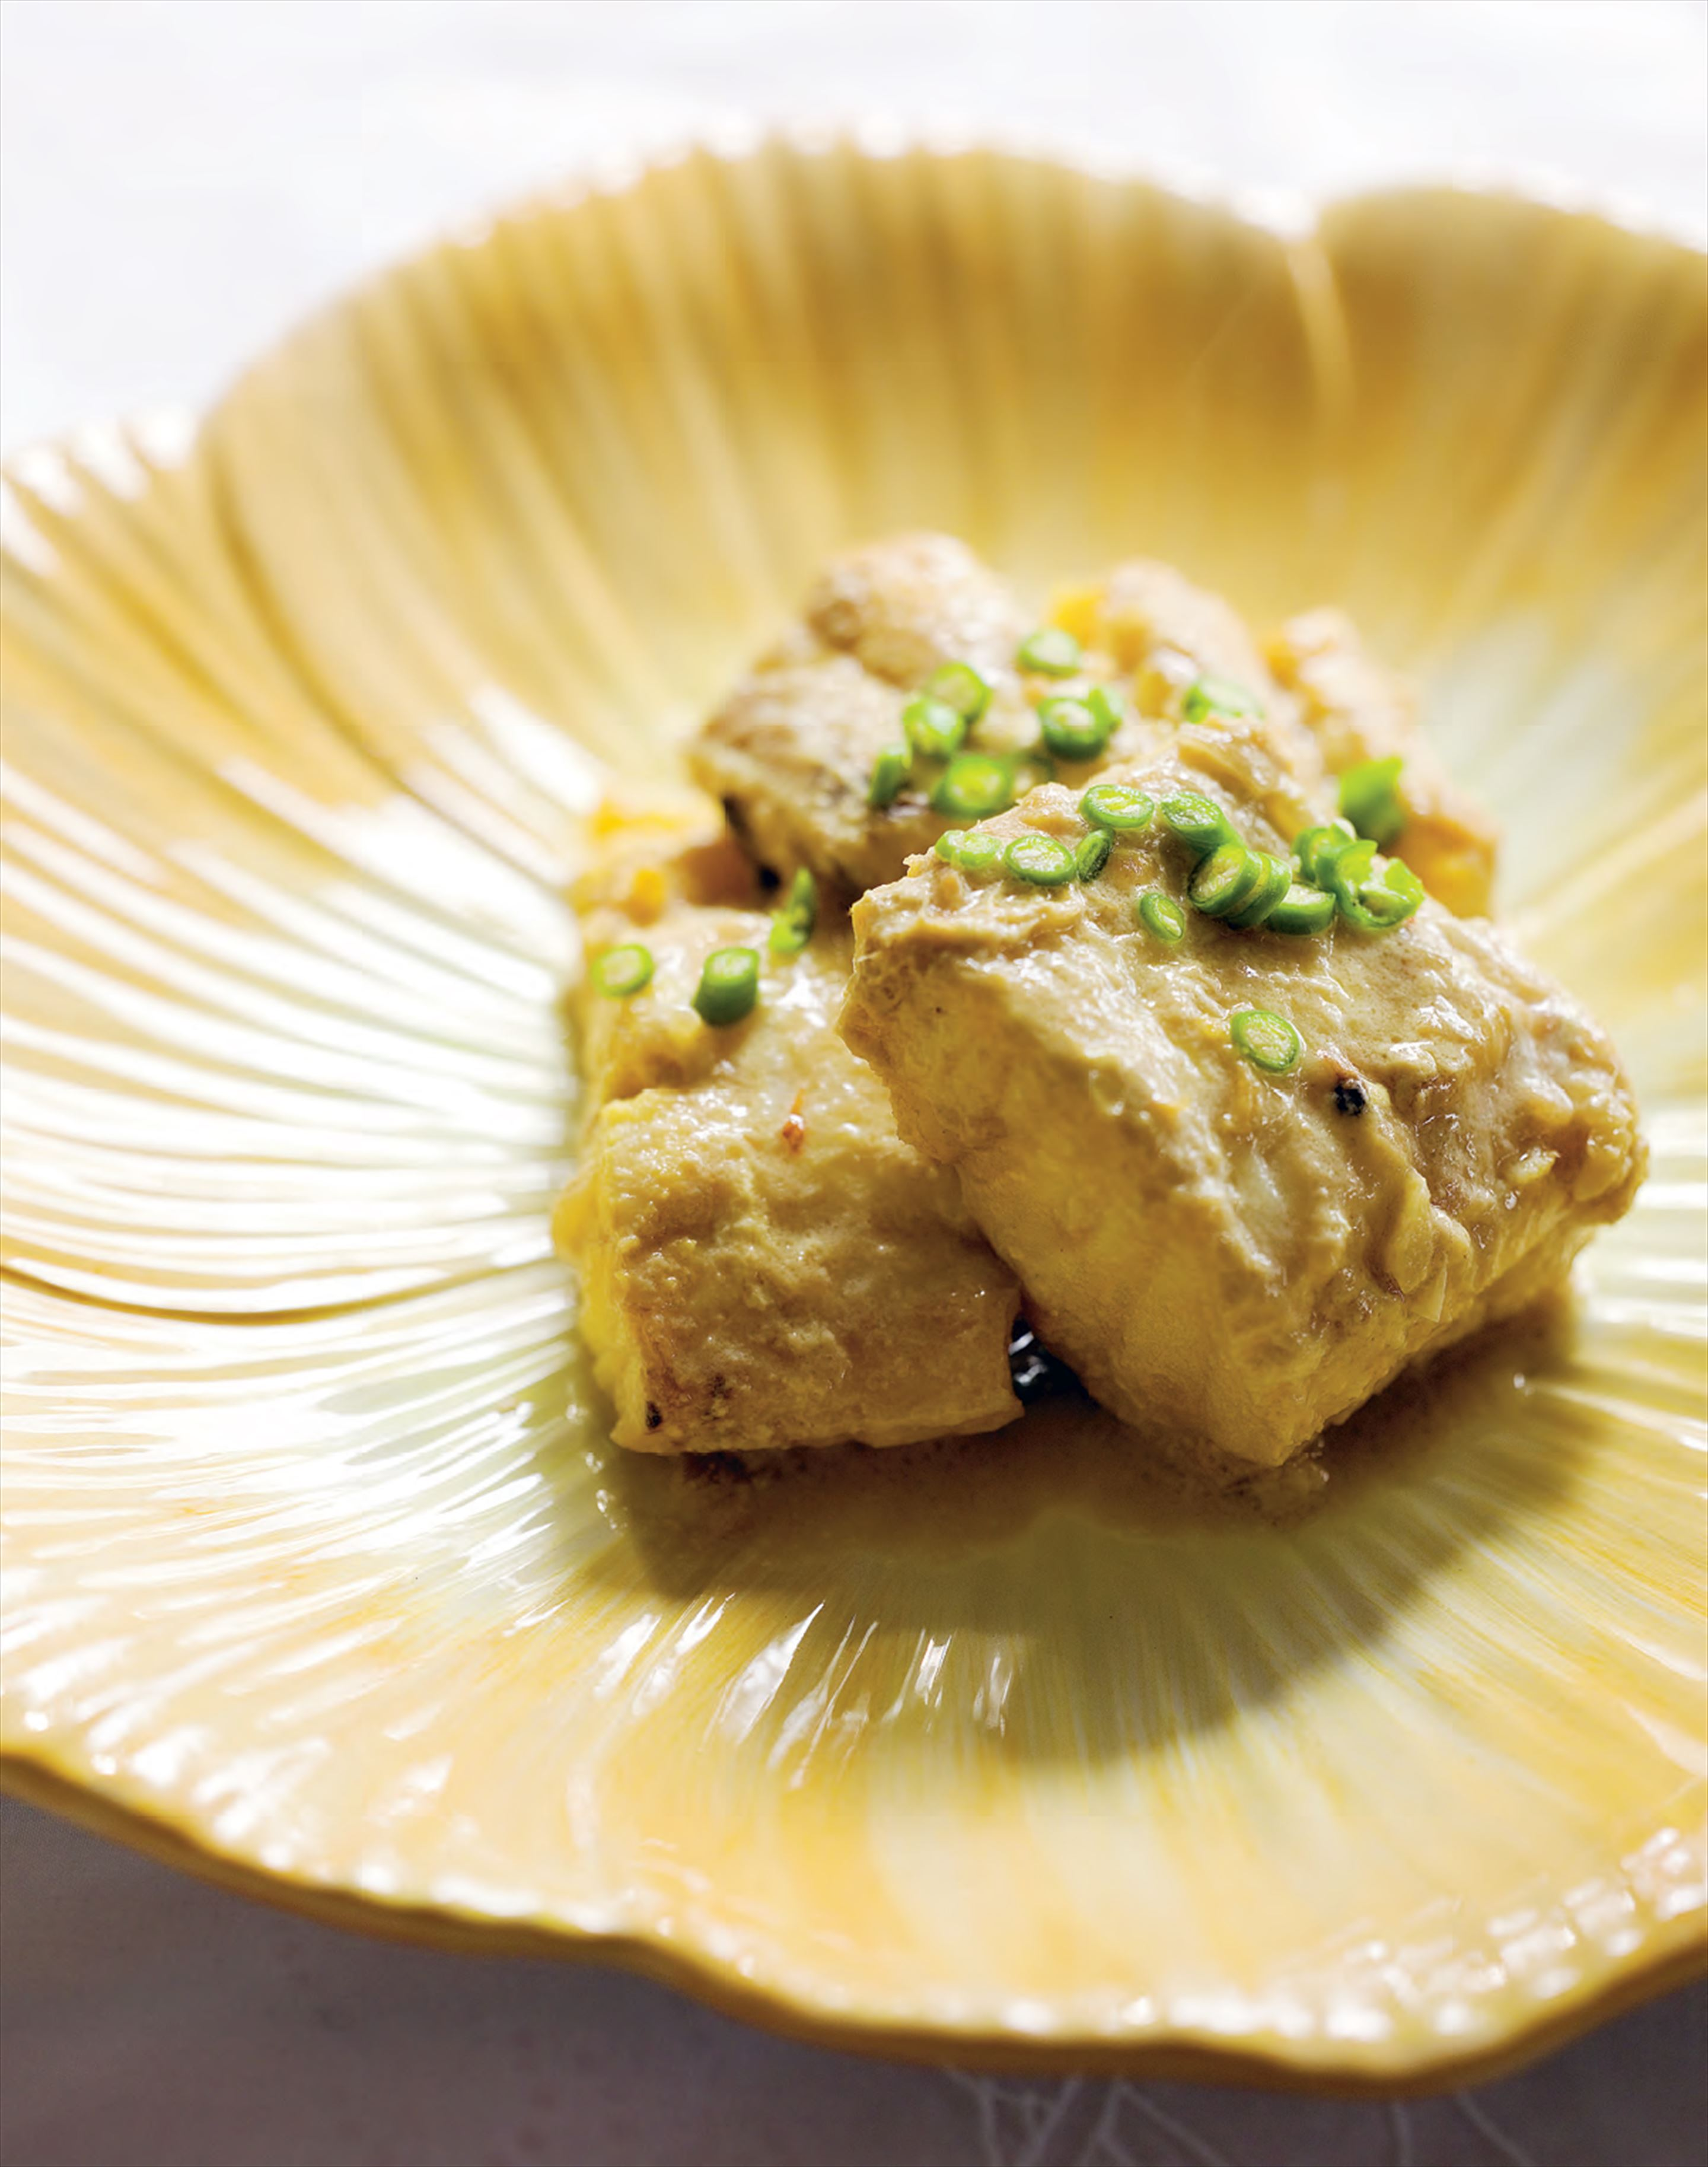 Fish in aromatic coconut sauce